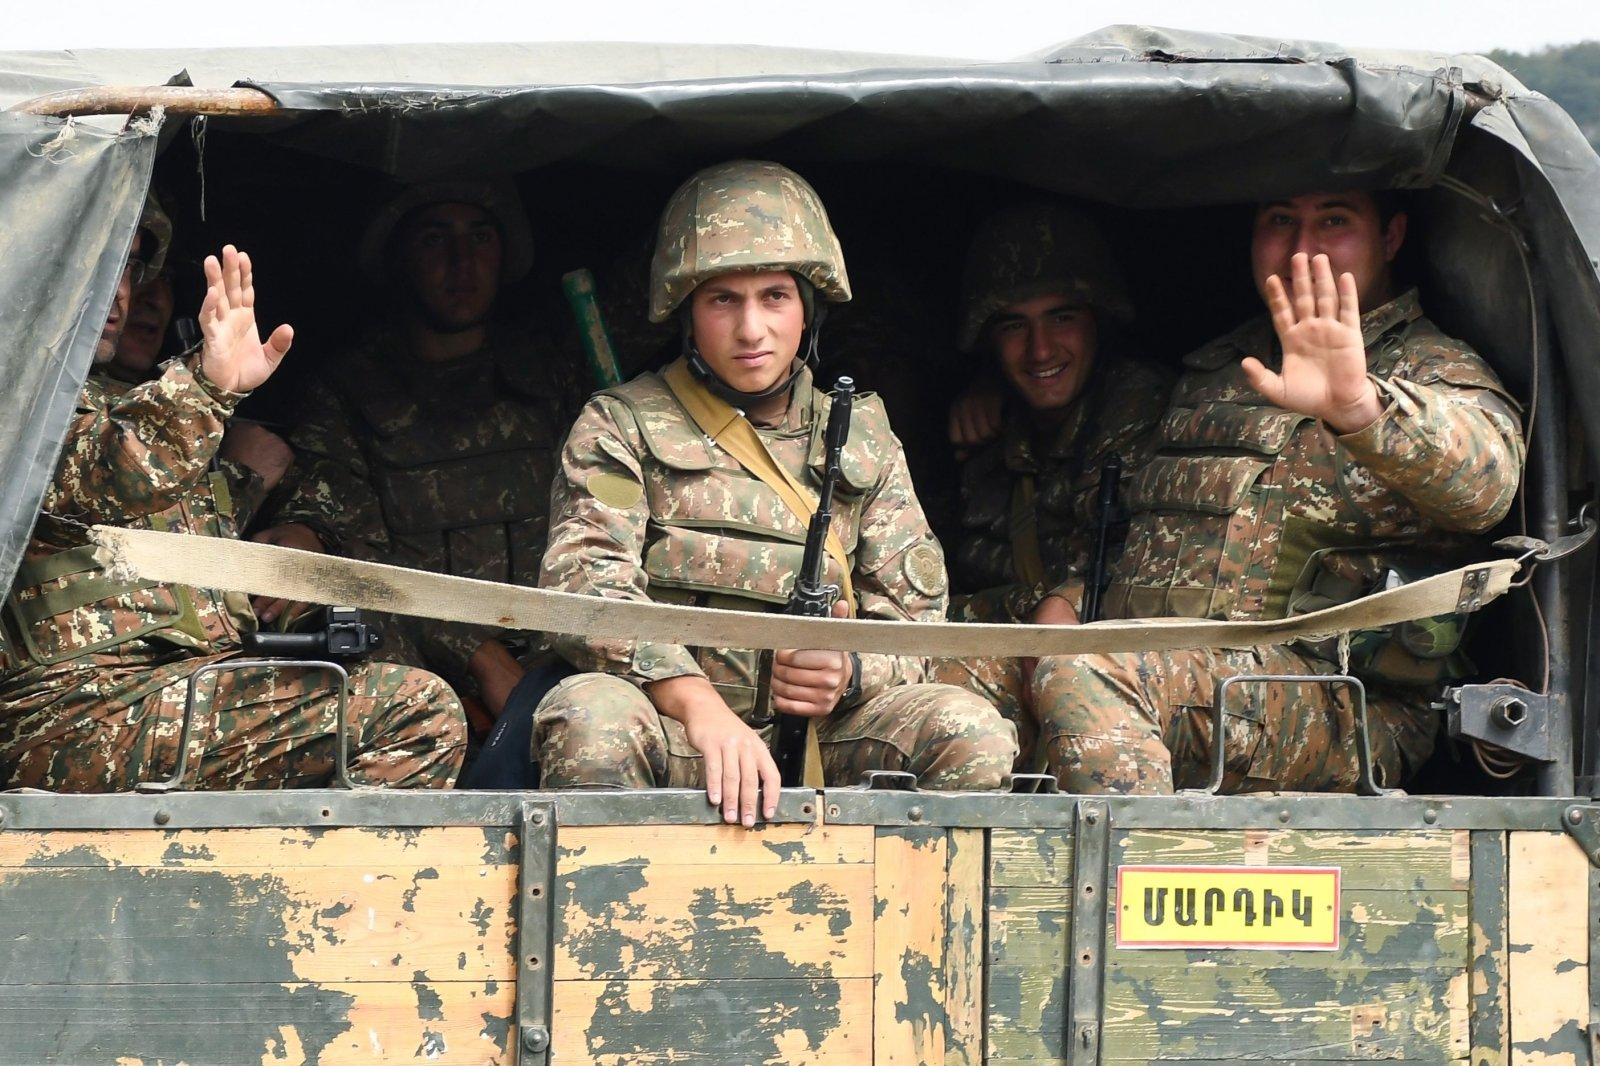 Armenian soldiers on the back of a truck